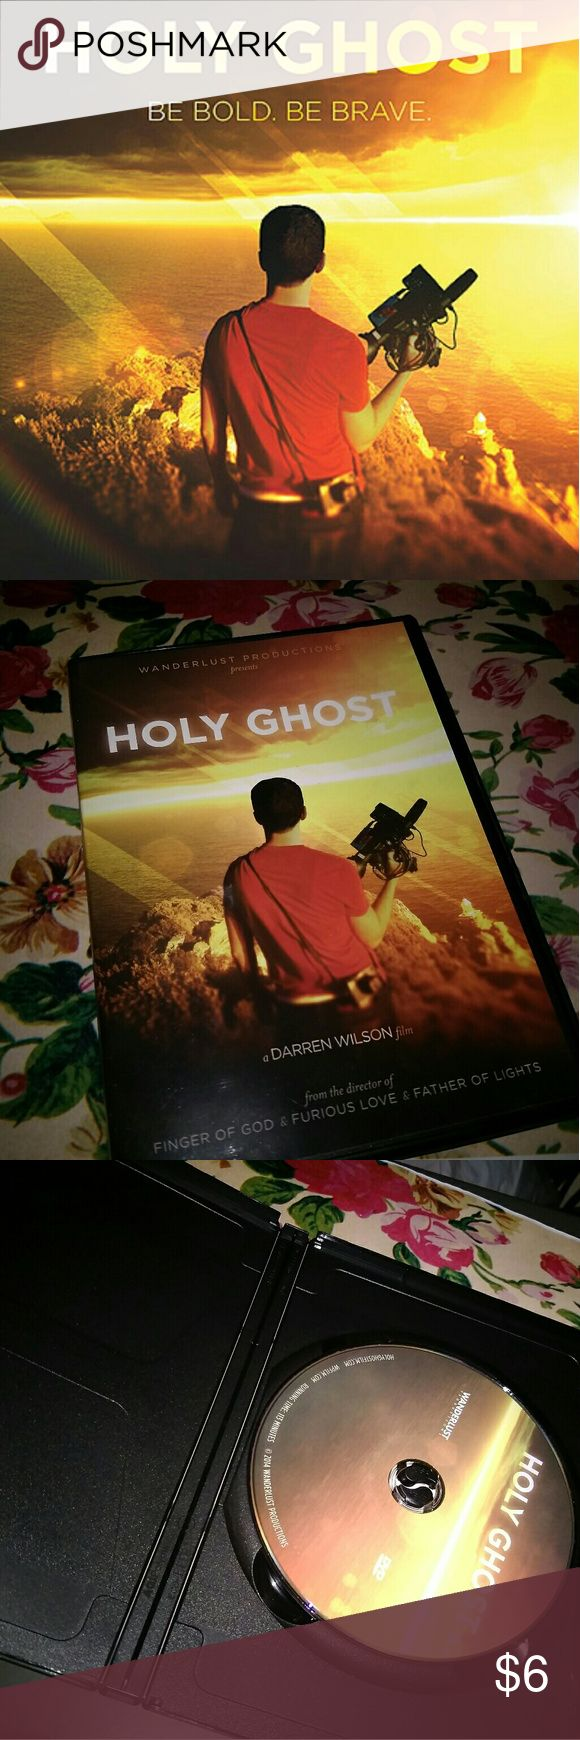 Holy Ghost Film Movie DVD Holy Ghost is a 2014 American Christian documentary film written and directed by Darren Wilson, to take the viewer to locations around the world to see if the Holy Spirit can really lead a film.  *All my DVD's are in working condition, may have one or two minimal scratches, or sometimes none on it.* Other